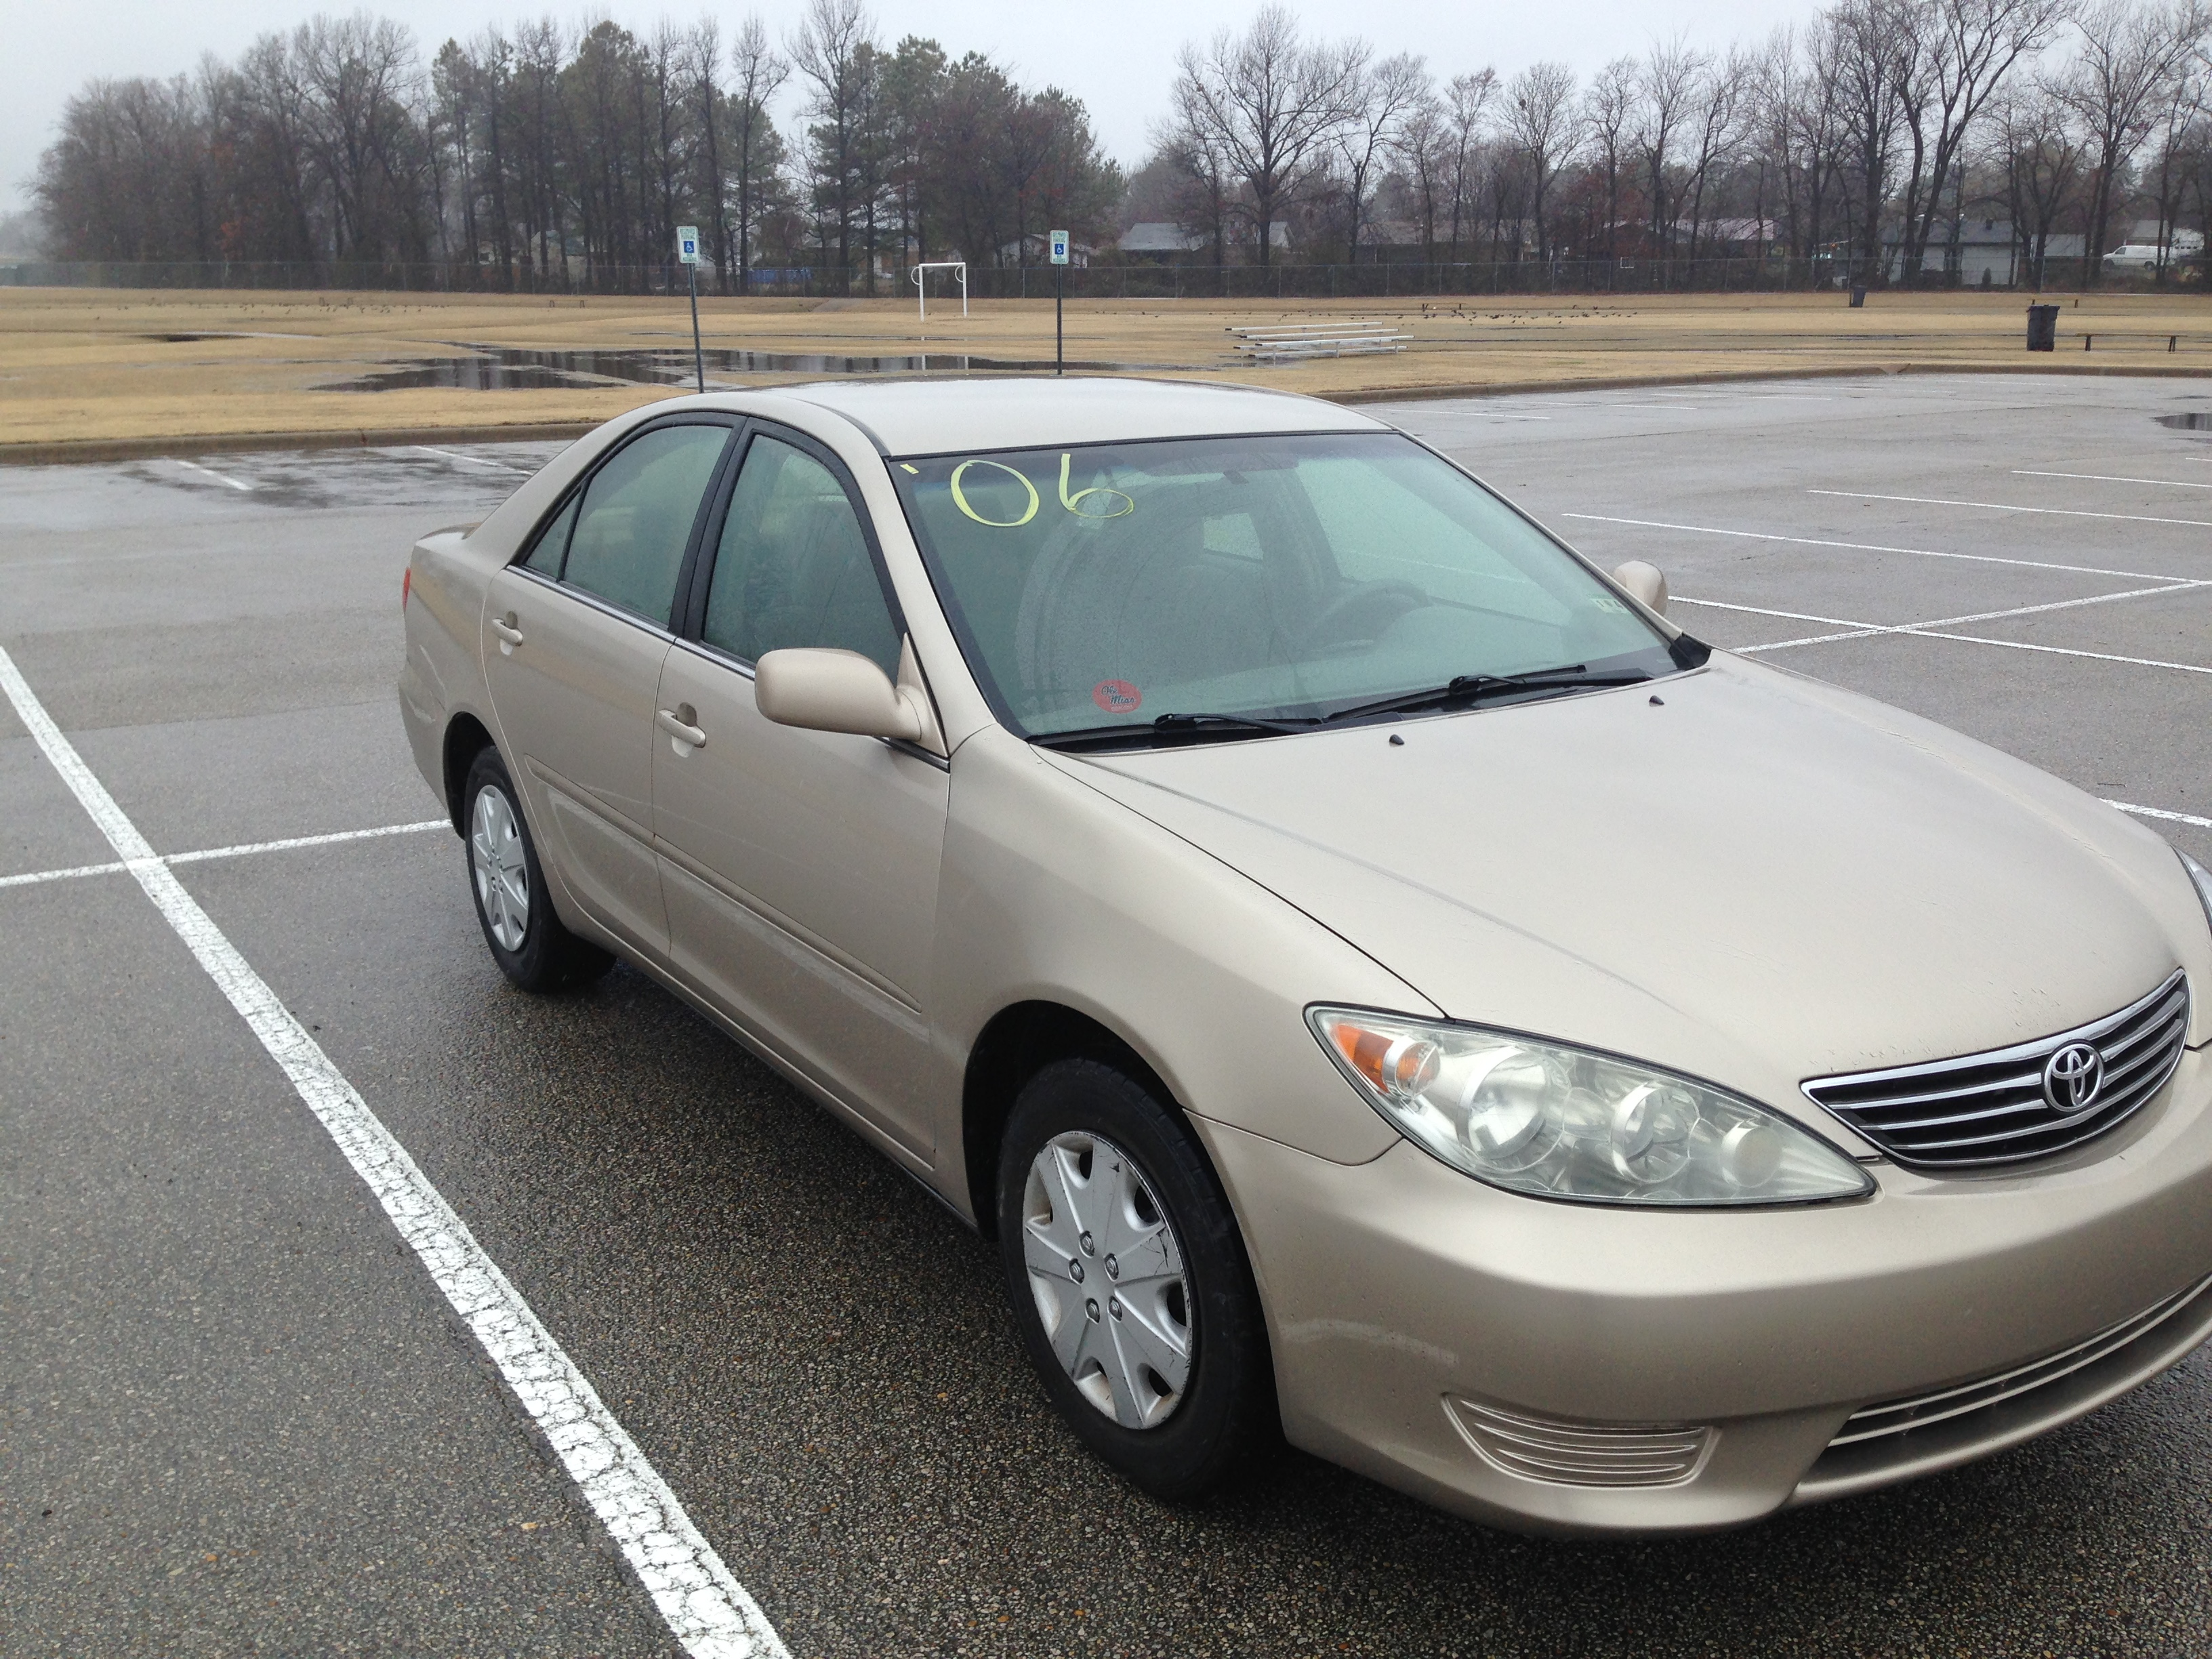 toyota camry 2006 gold gold 2006 toyota camry j l auto sales 2006 toyota camry xle gold fwd. Black Bedroom Furniture Sets. Home Design Ideas